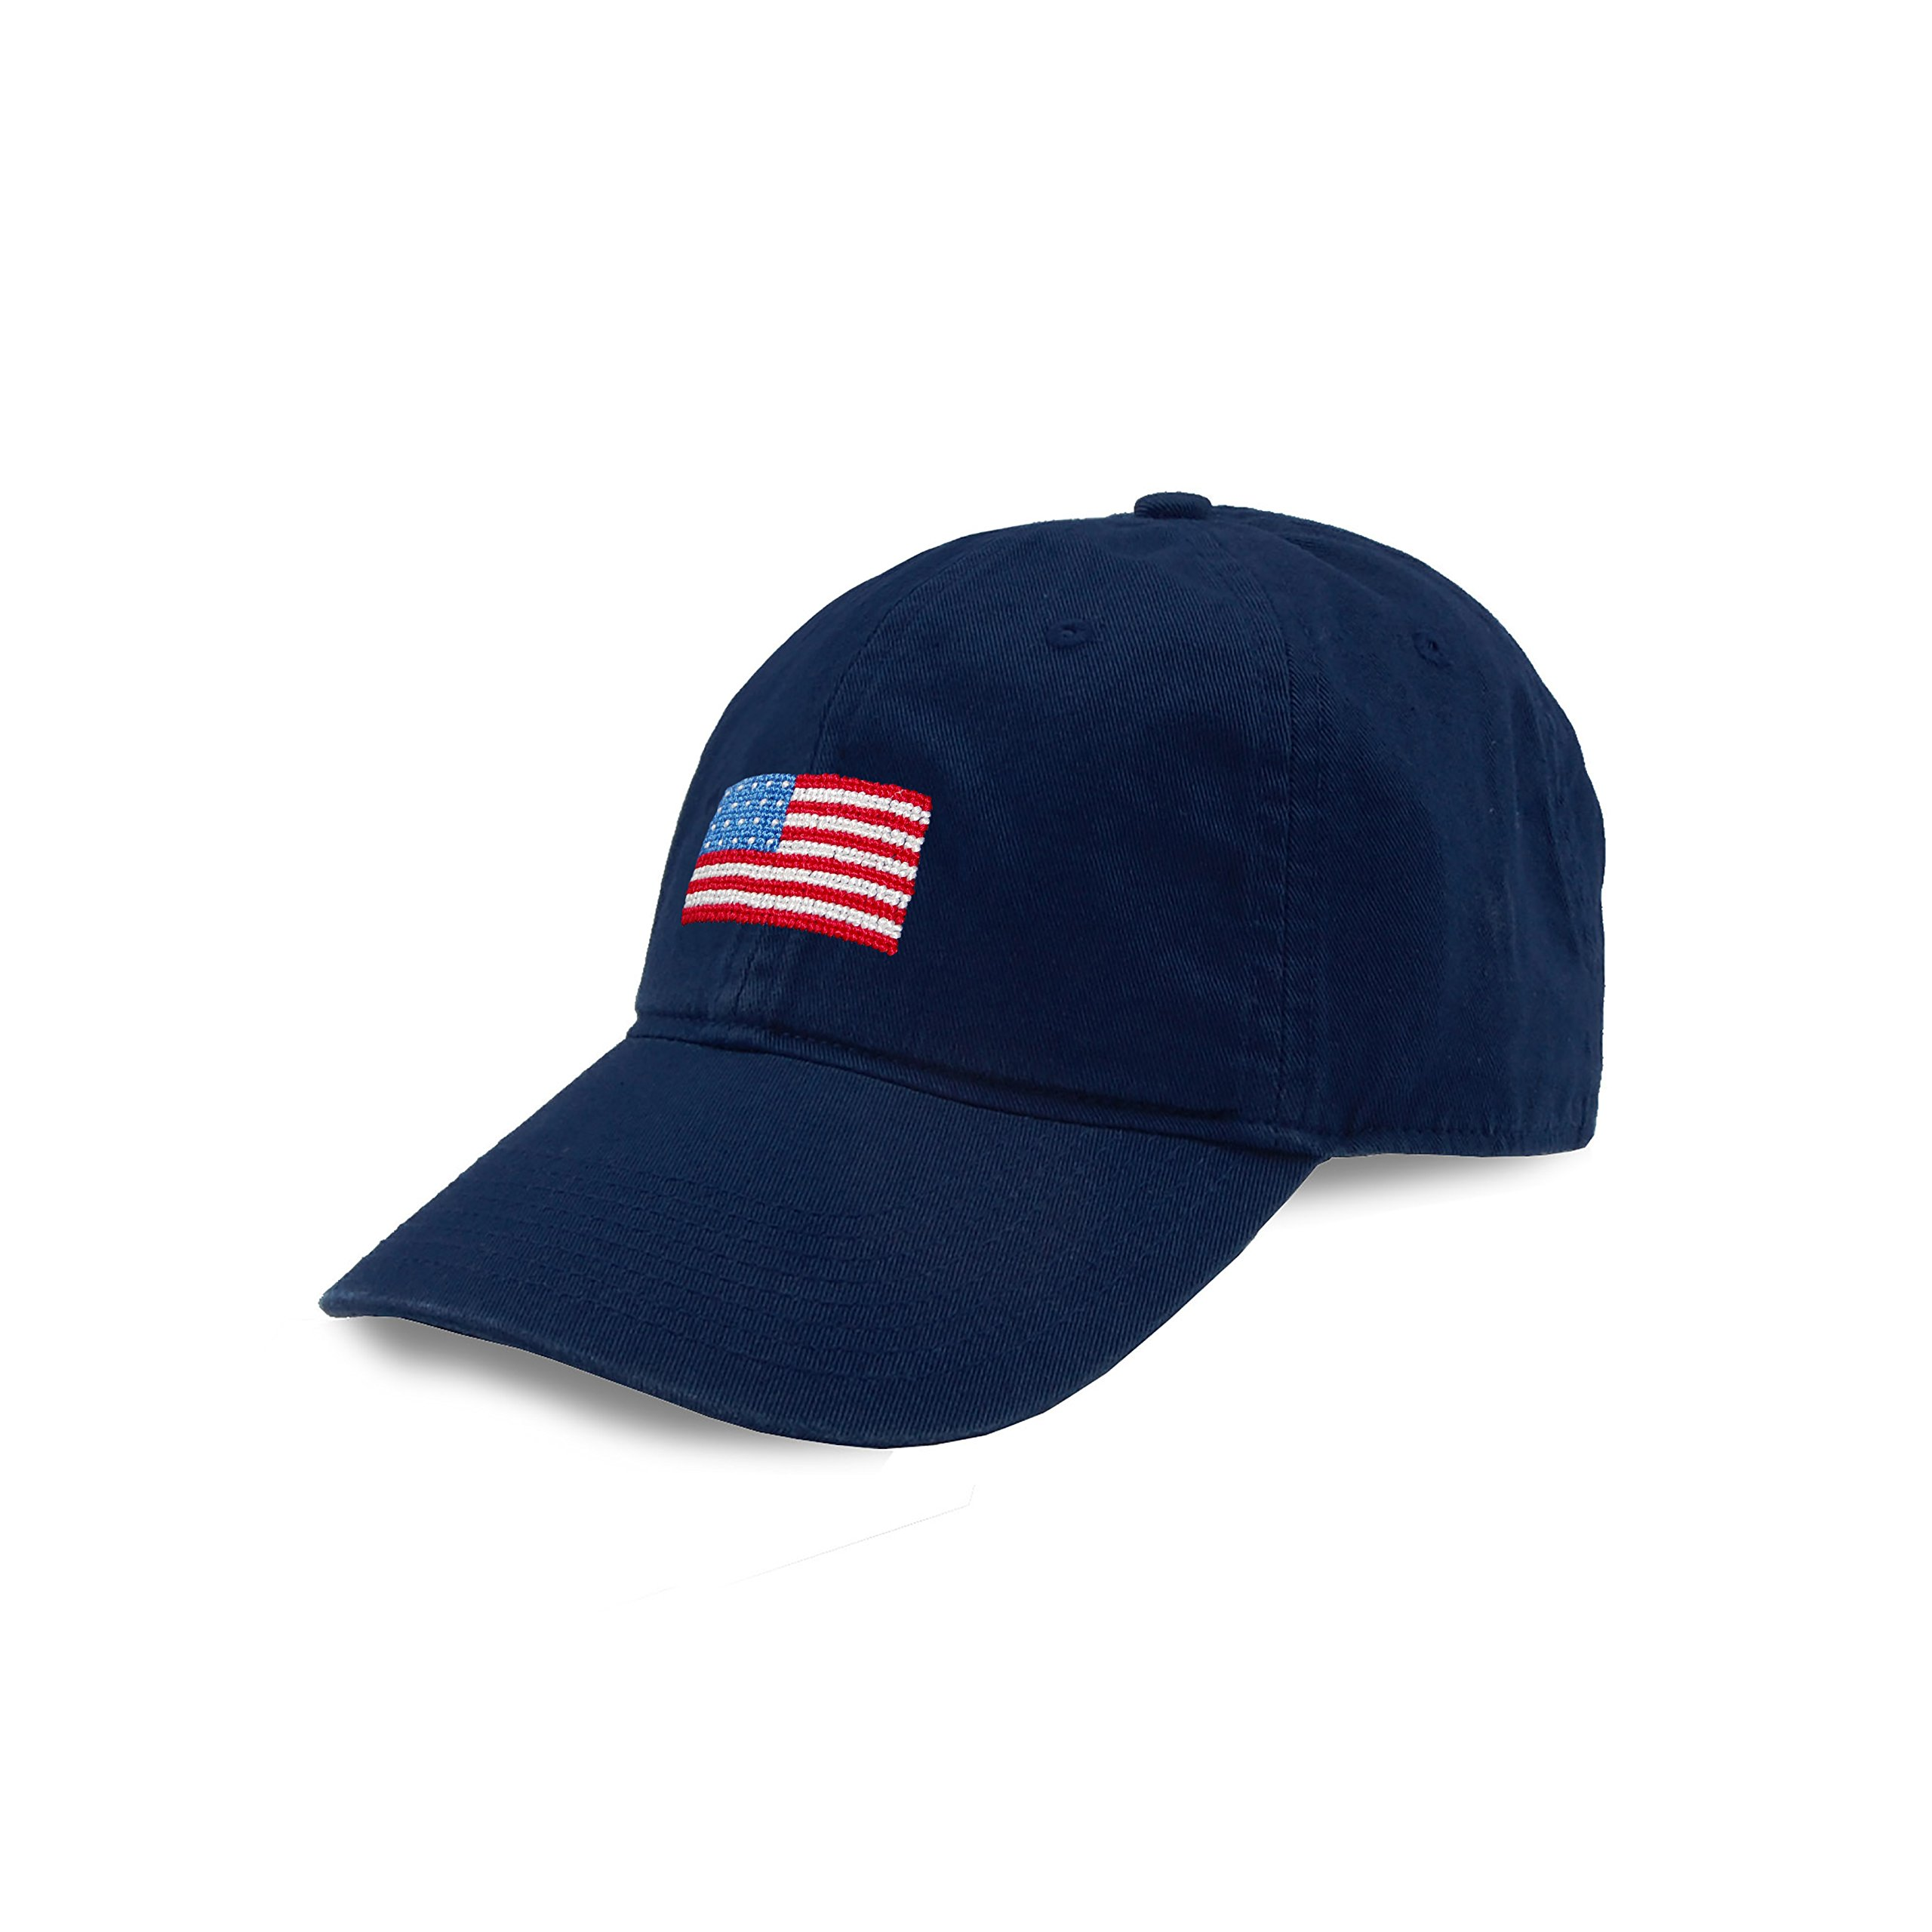 Smathers & Branson Men's Hat One Size American Flag/Navy